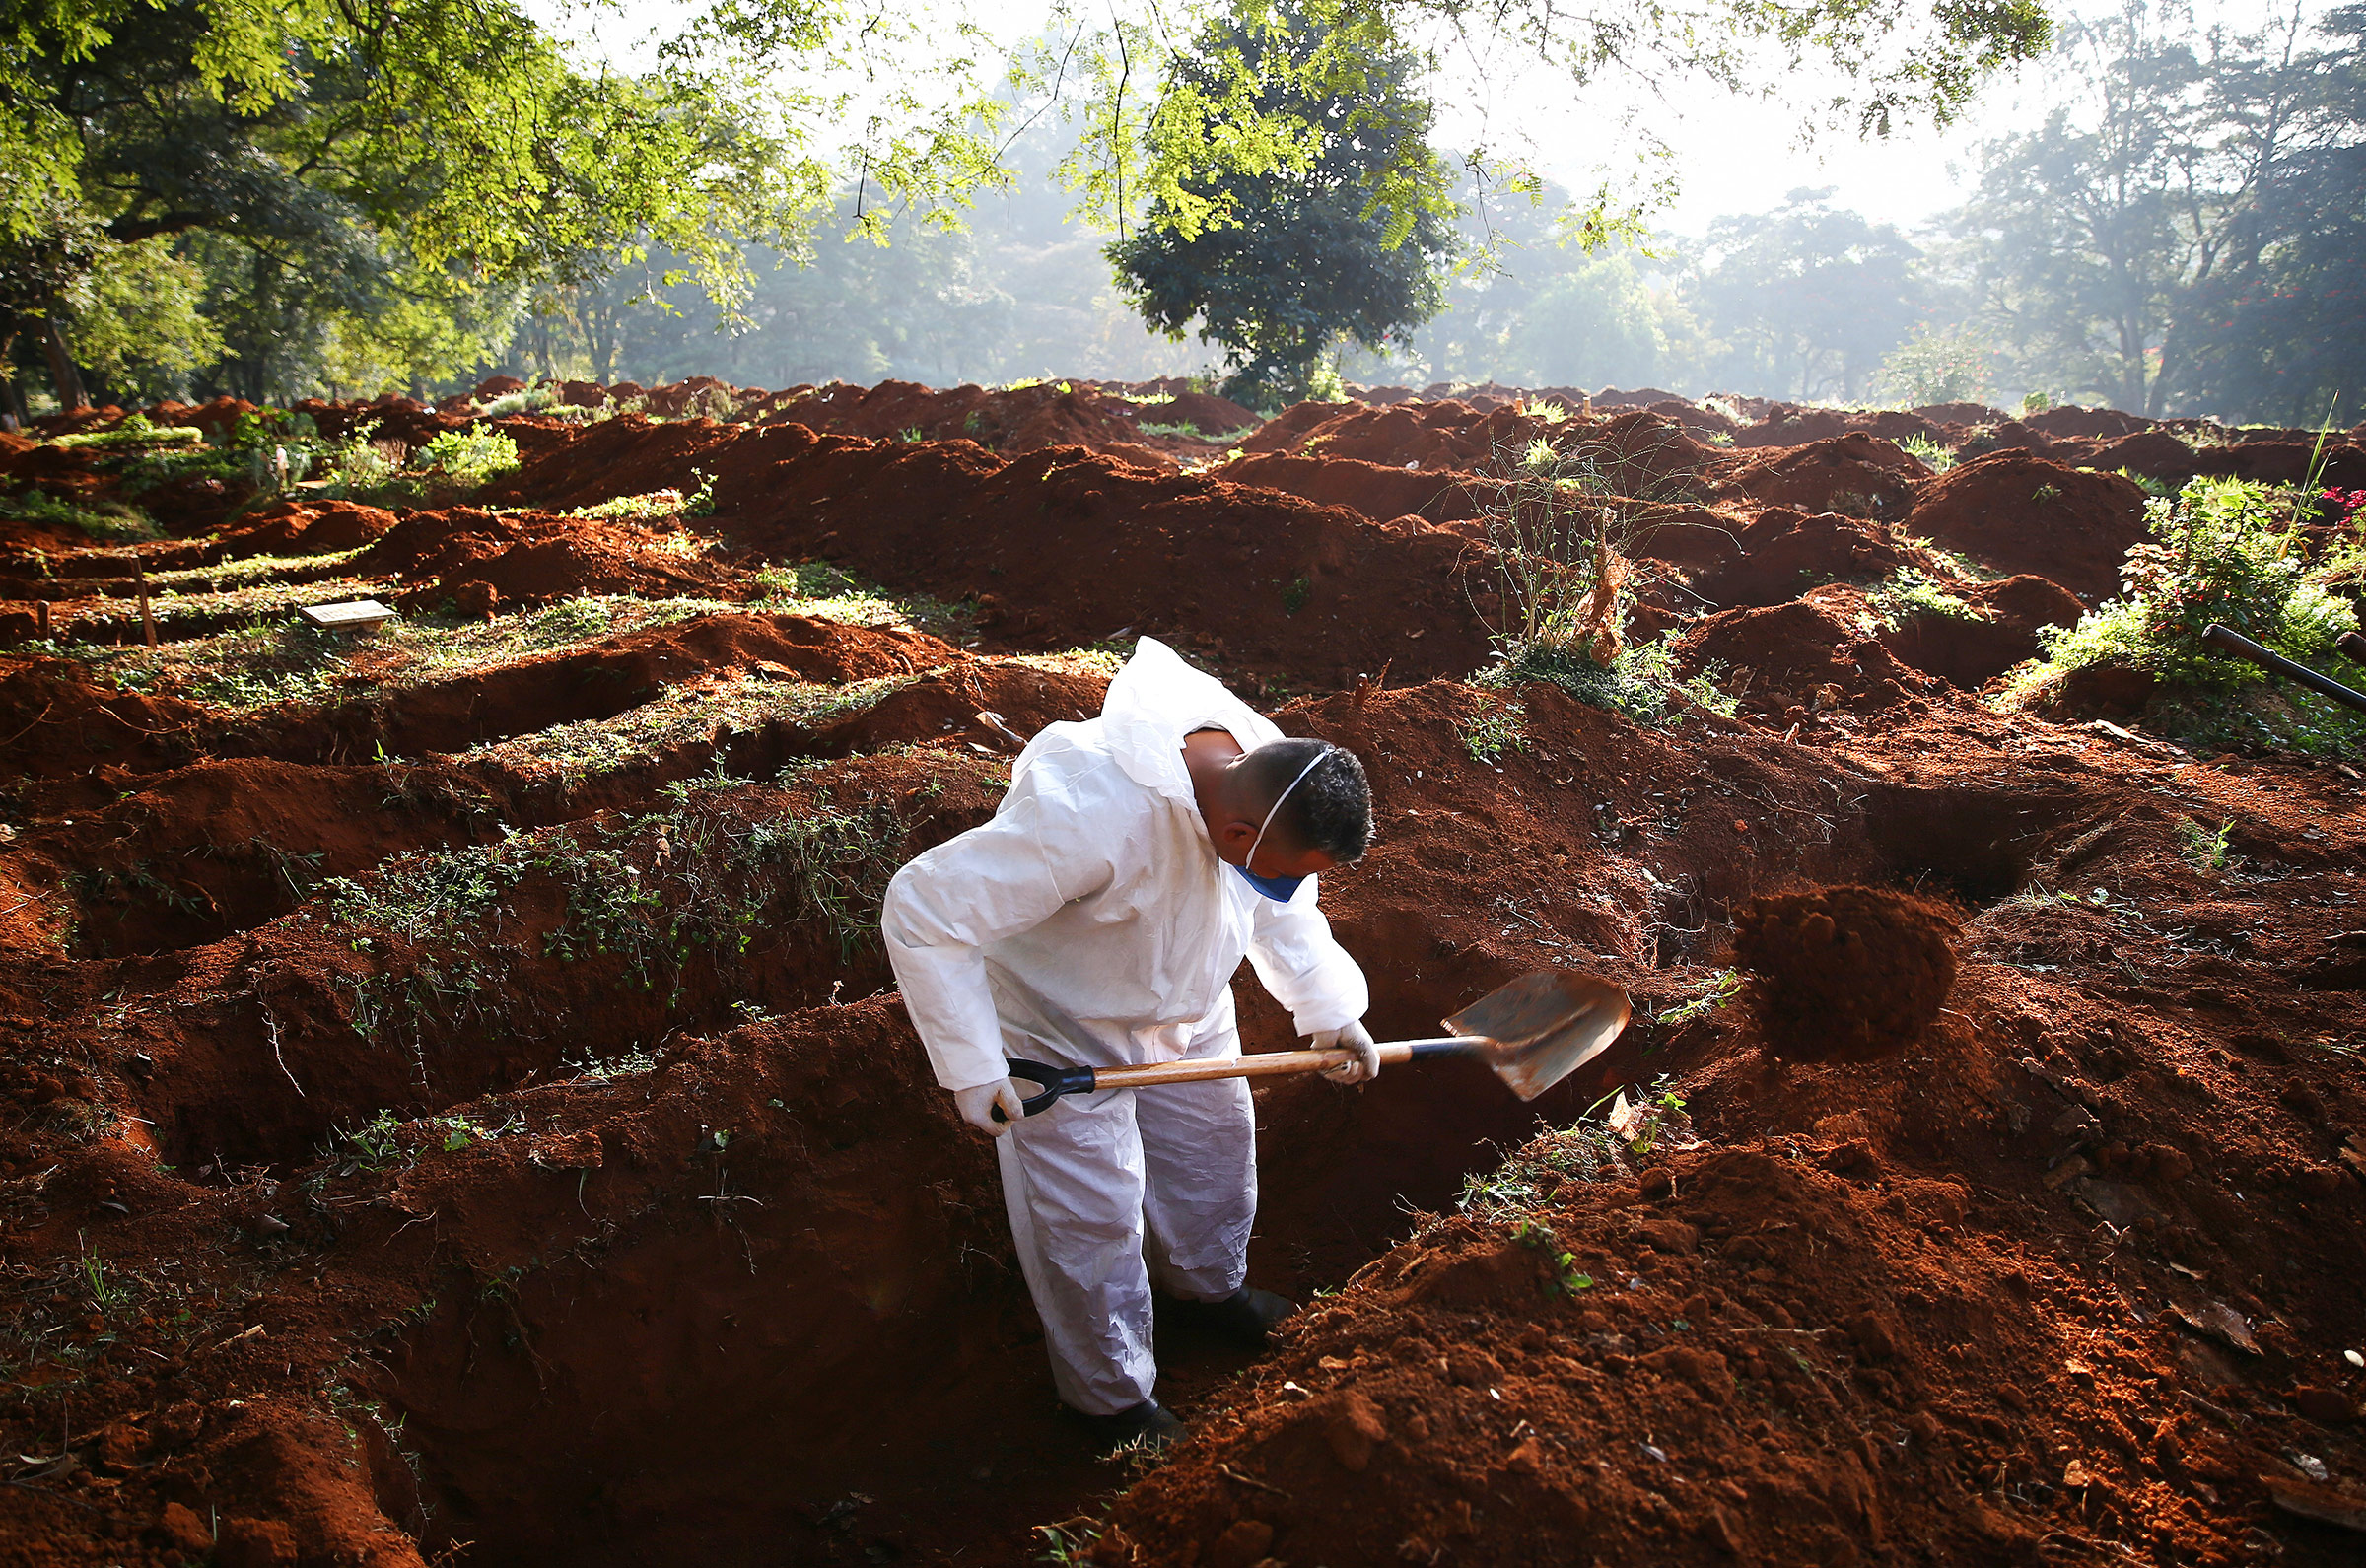 A cemetery worker digs a grave for a Covid-19 victim at Vila Formosa cemetery in Sao Paulo, Brazil, on May 19.